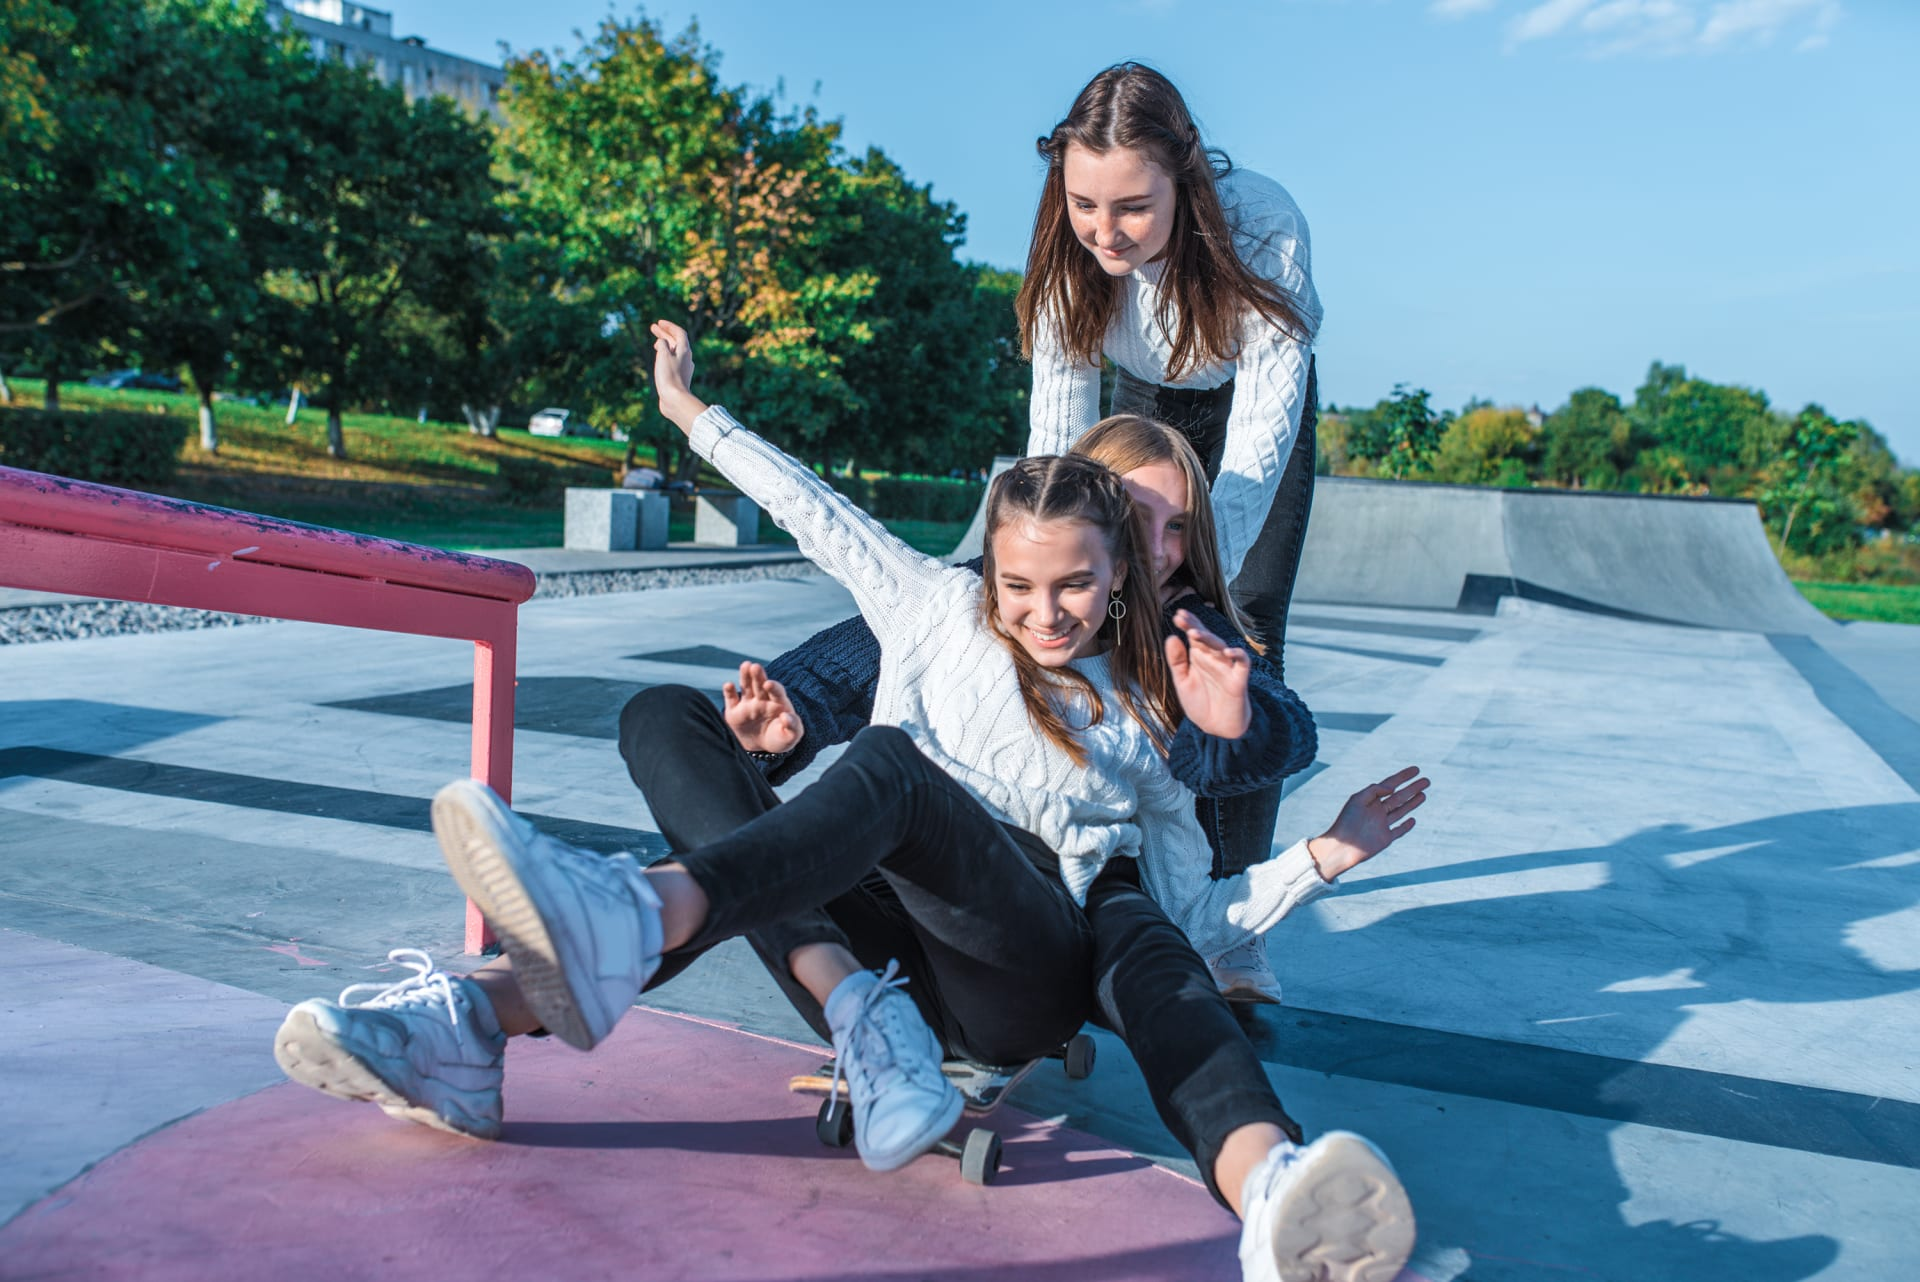 Girls playing and riding a skateboard